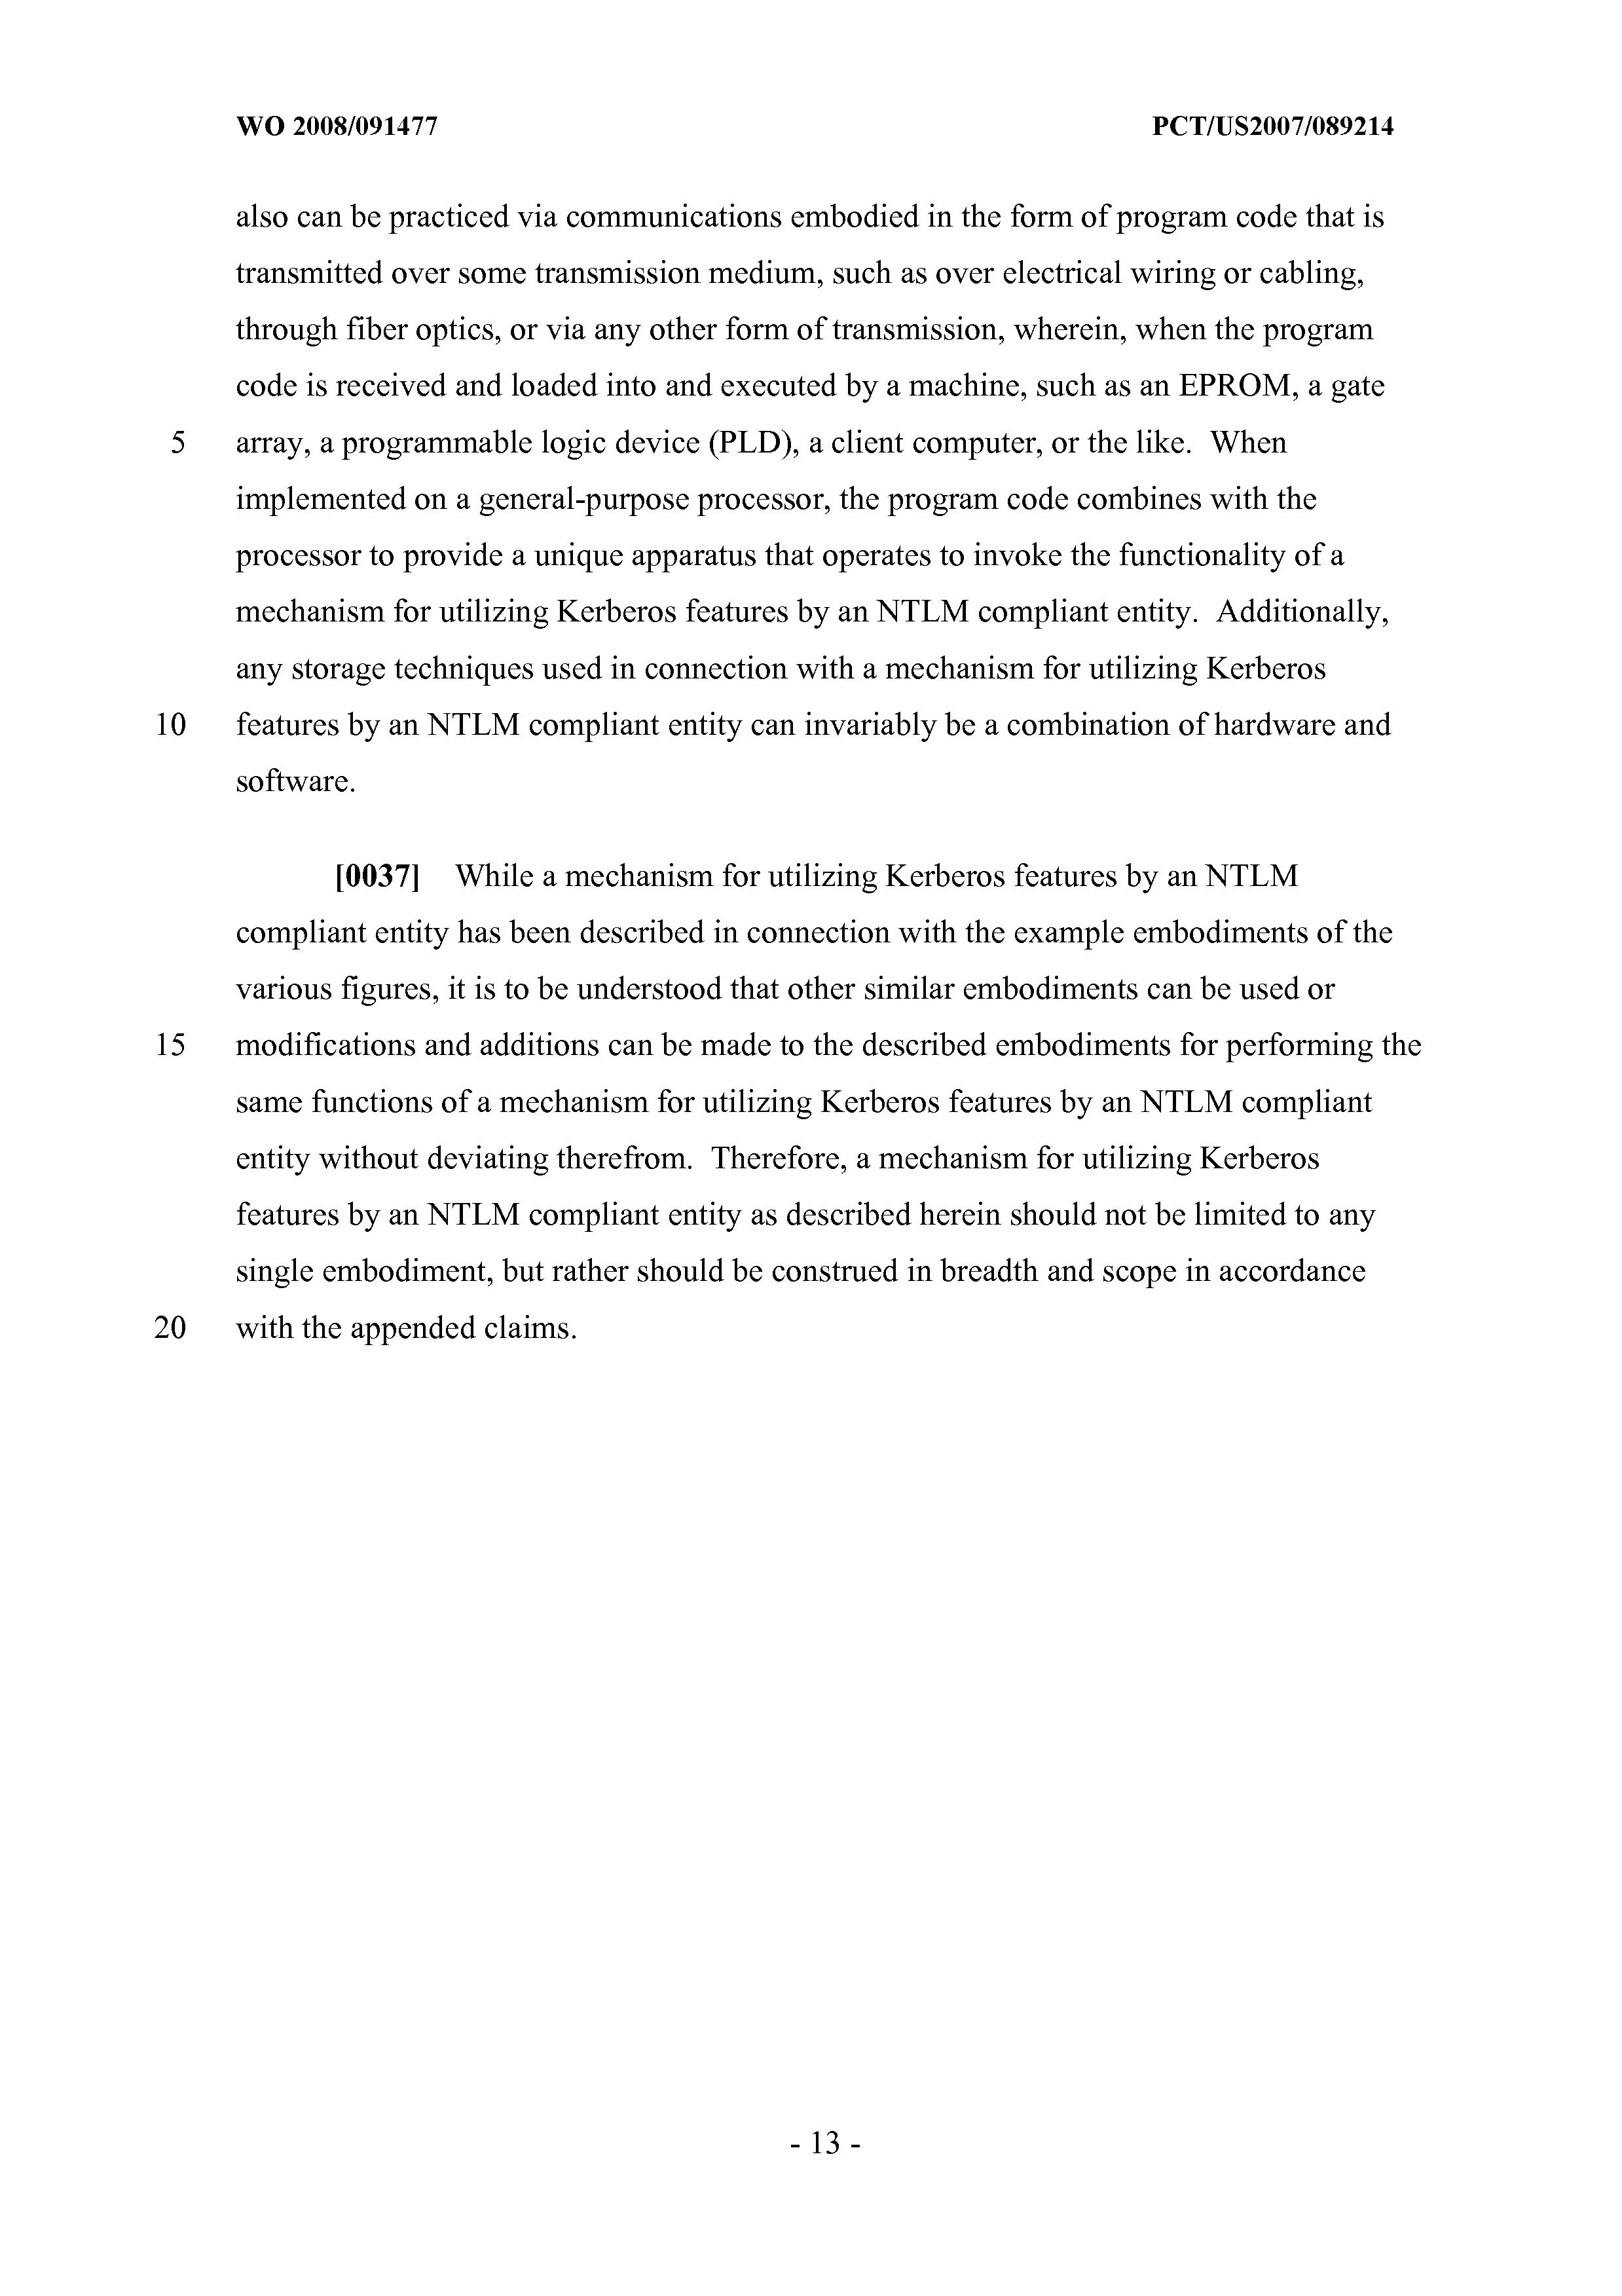 WO 2008/091477 A1 - Mechanism For Utilizing Kerberos Features By An